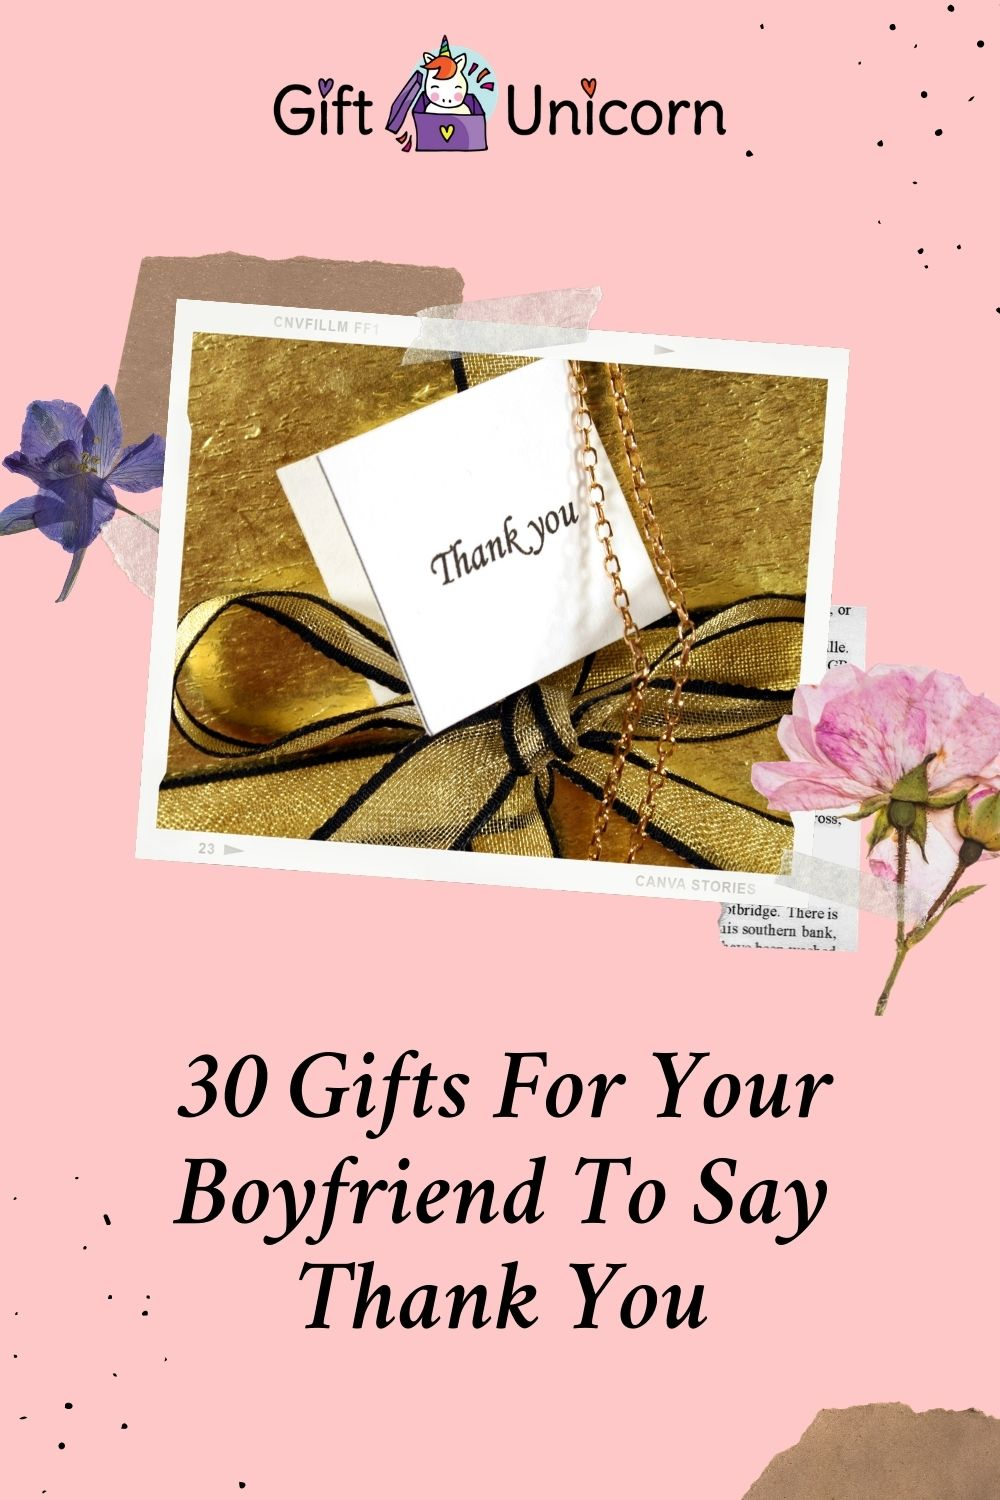 30 Gifts for your boyfriend to say thank you